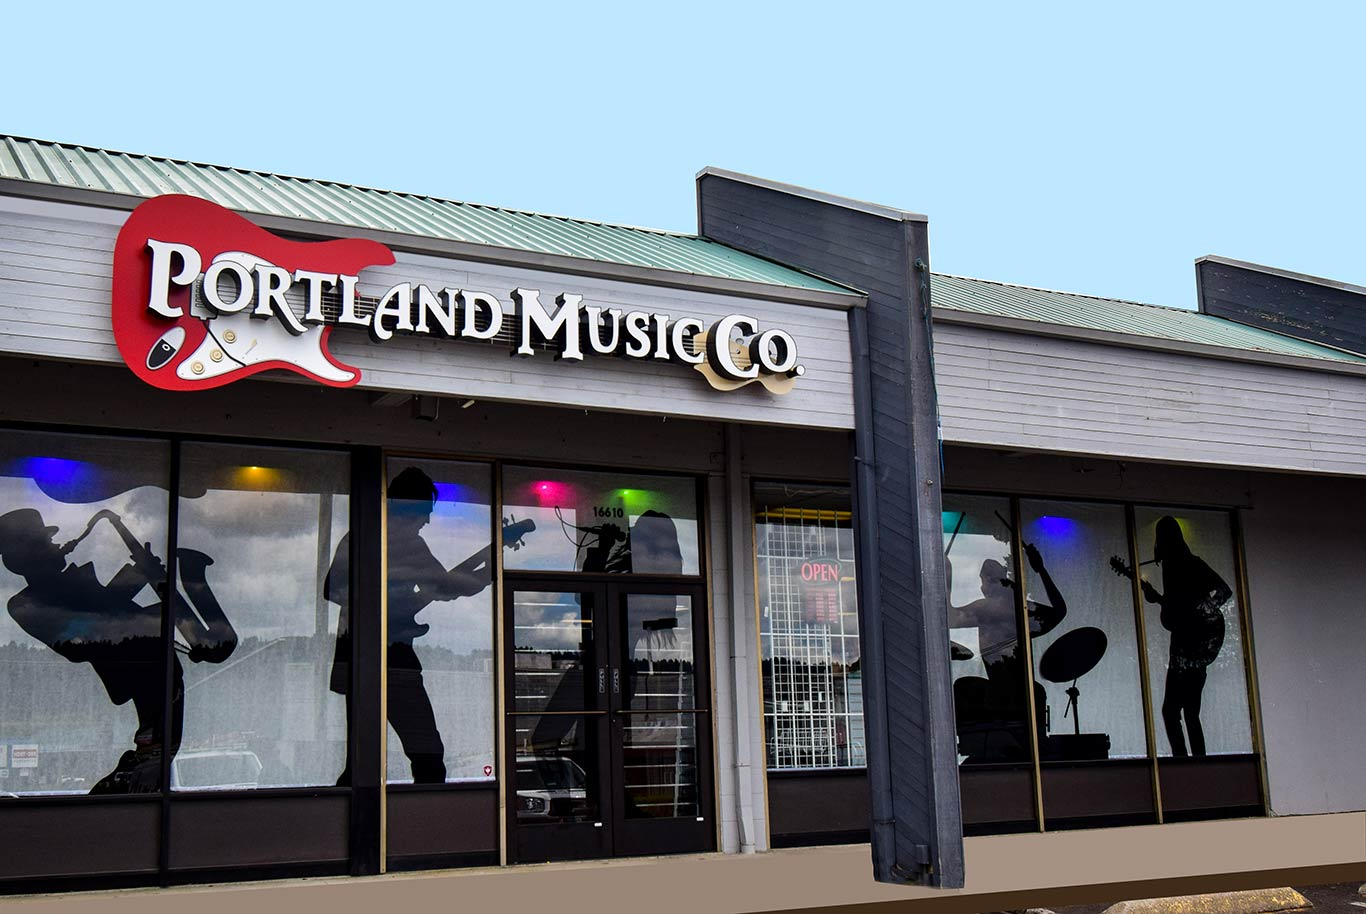 OAK grove portland music company